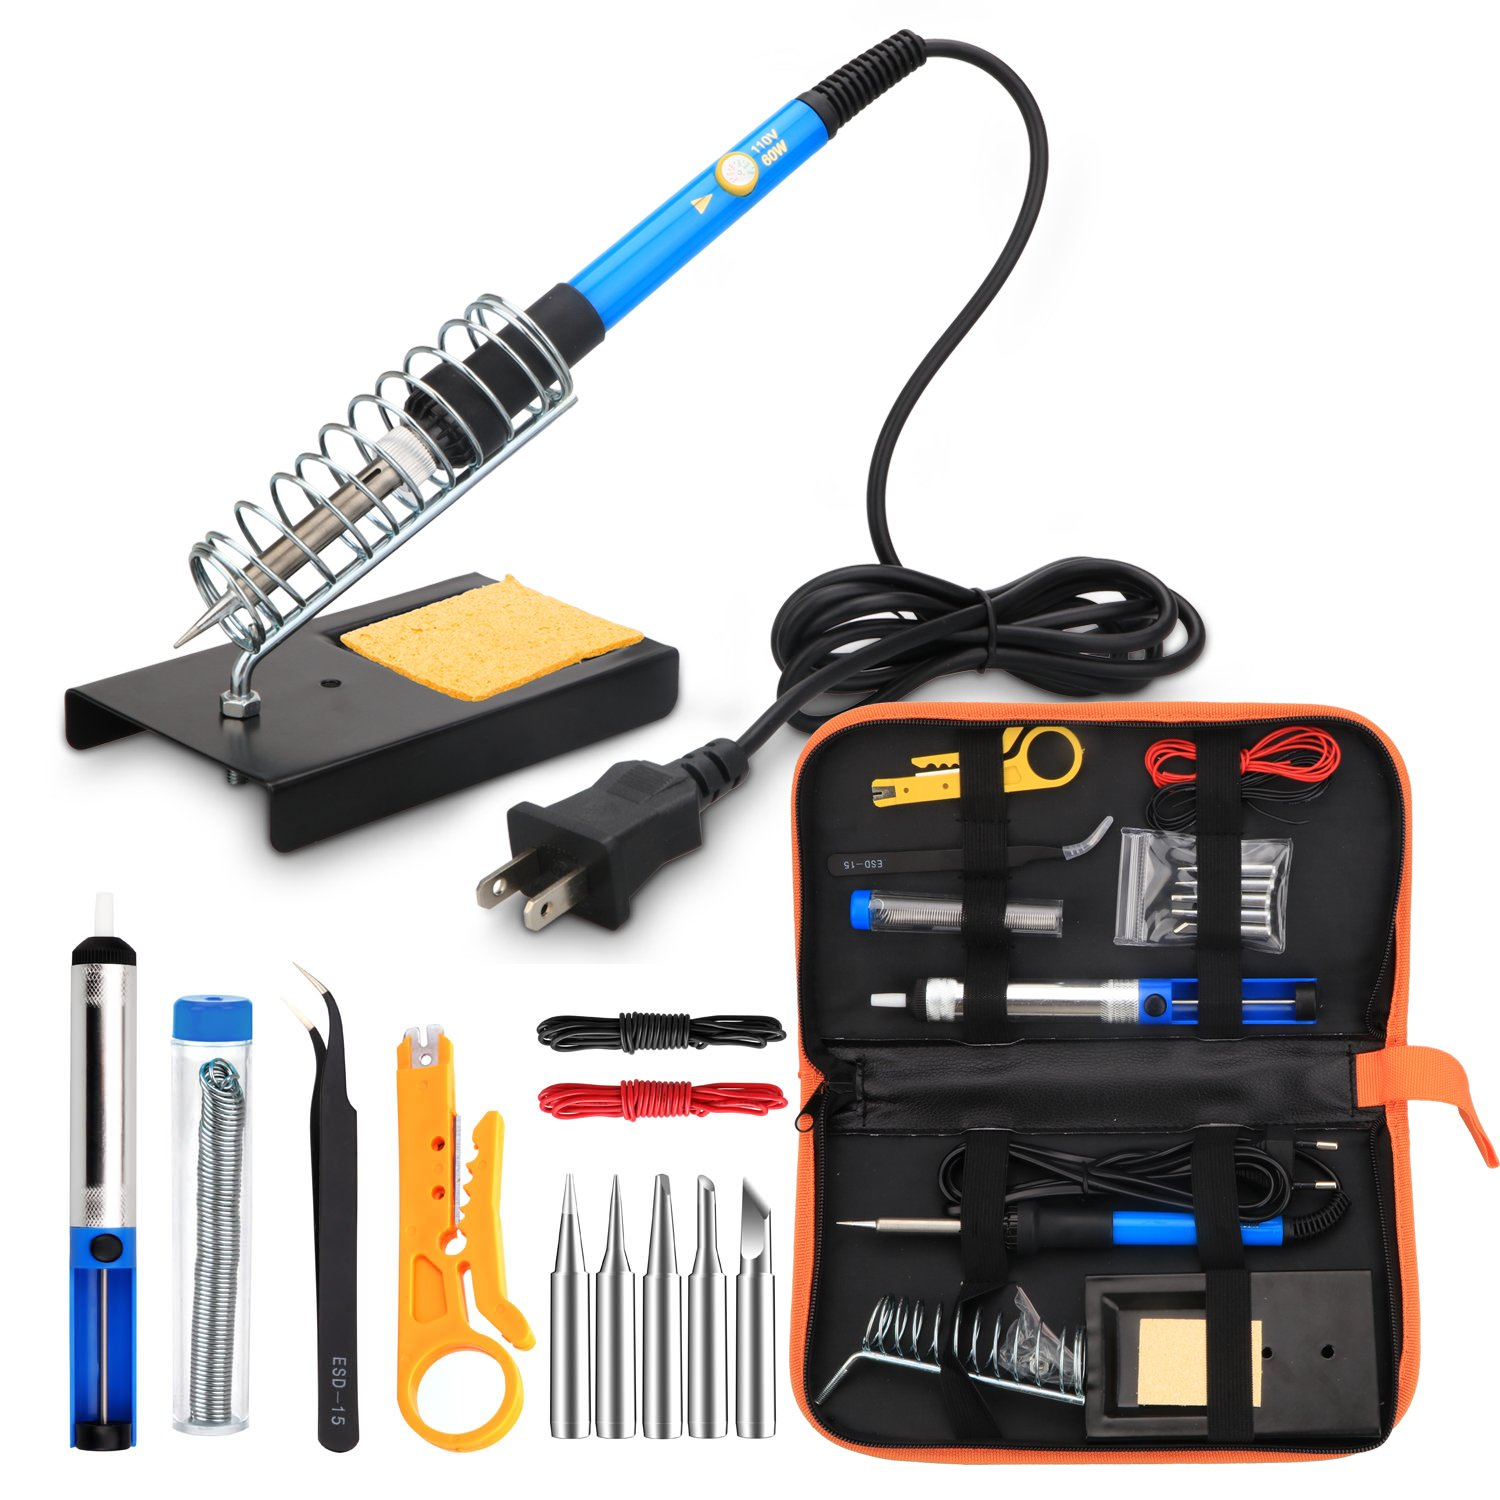 ANBES Soldering Iron Kit Electronics, 60W Adjustable Temperature Welding Tool, 5pcs Soldering Tips, Desoldering Pump, Soldering Iron Stand, Tweezers